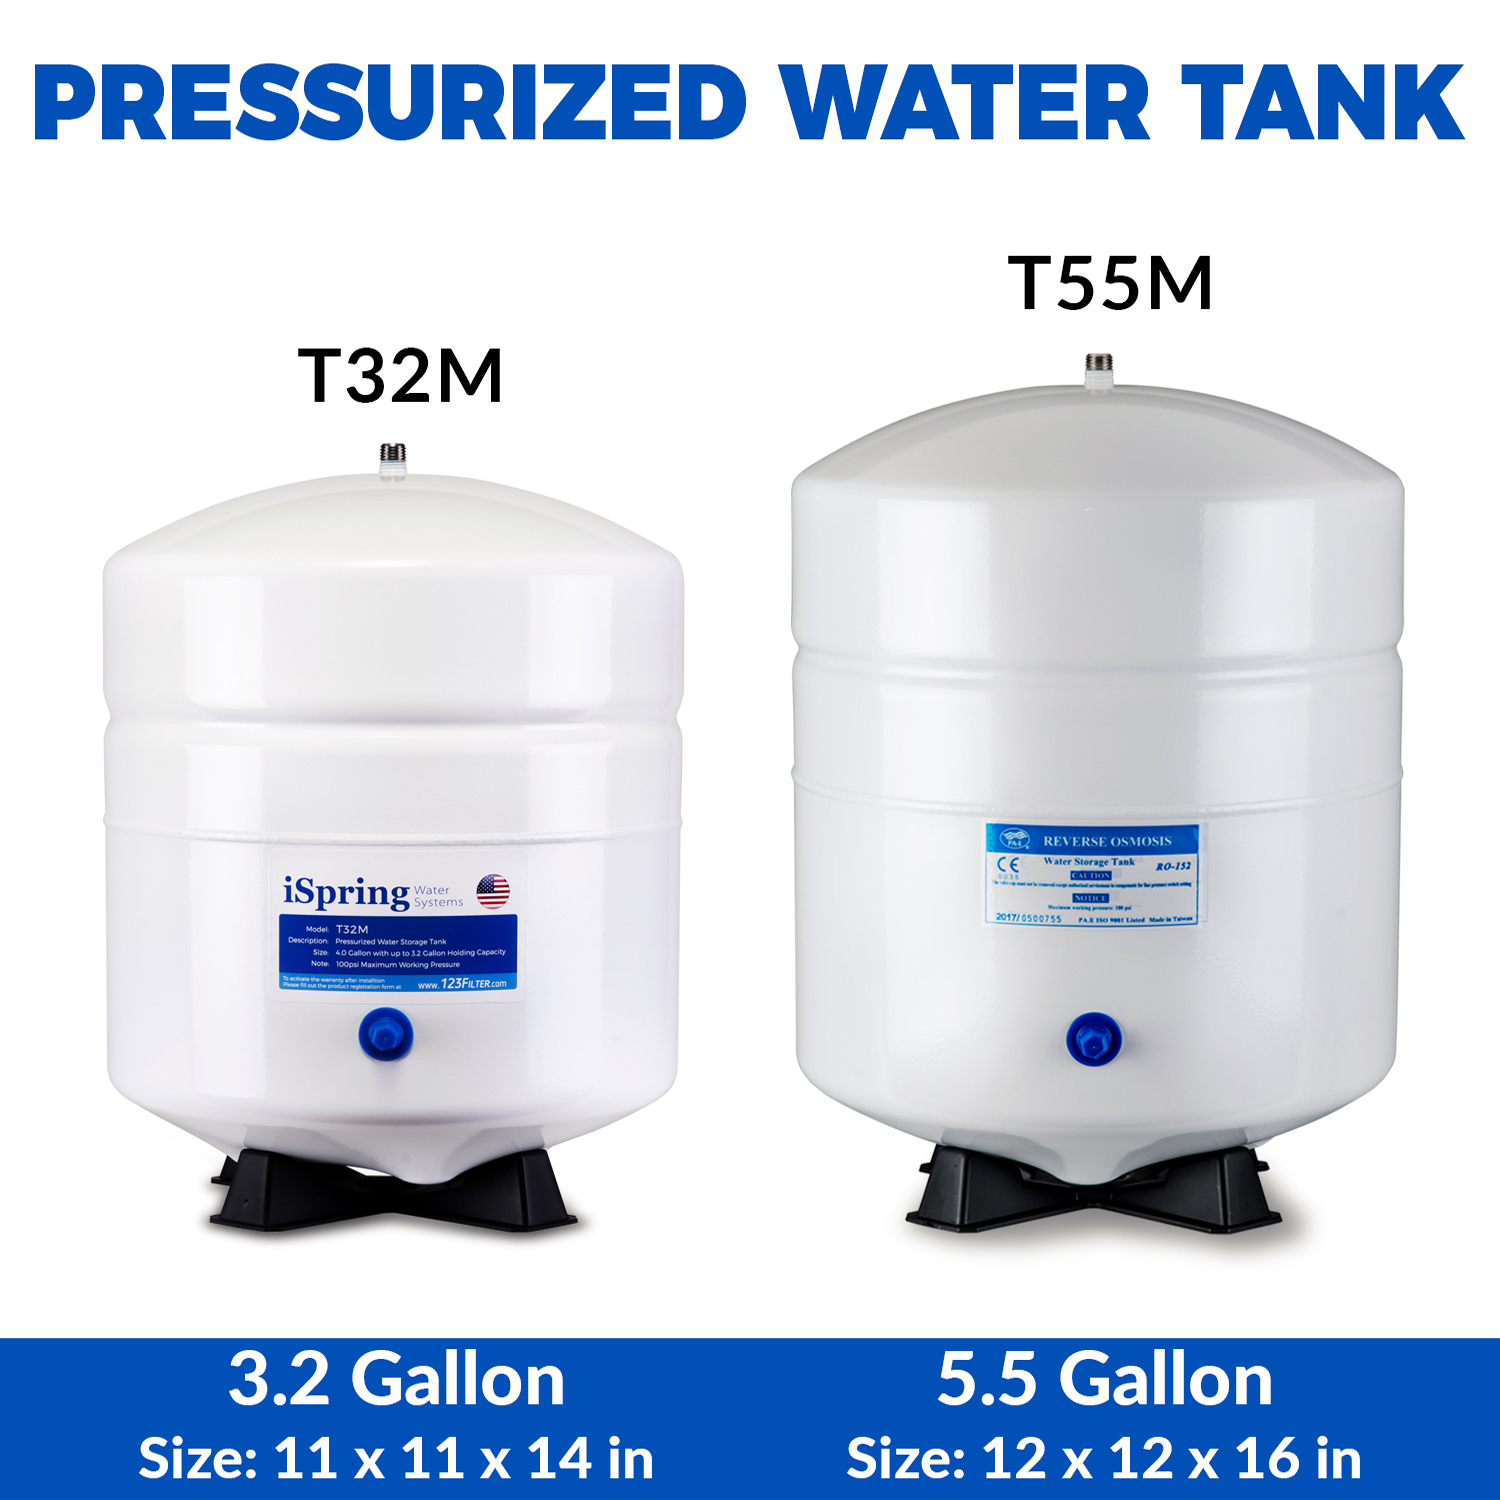 iSpring T32M 4 Gallon Residential Pressurized Water Storage Tank for Reverse Osmosis (RO) Systems - Walmart.com  sc 1 st  Walmart & iSpring T32M 4 Gallon Residential Pressurized Water Storage Tank for ...